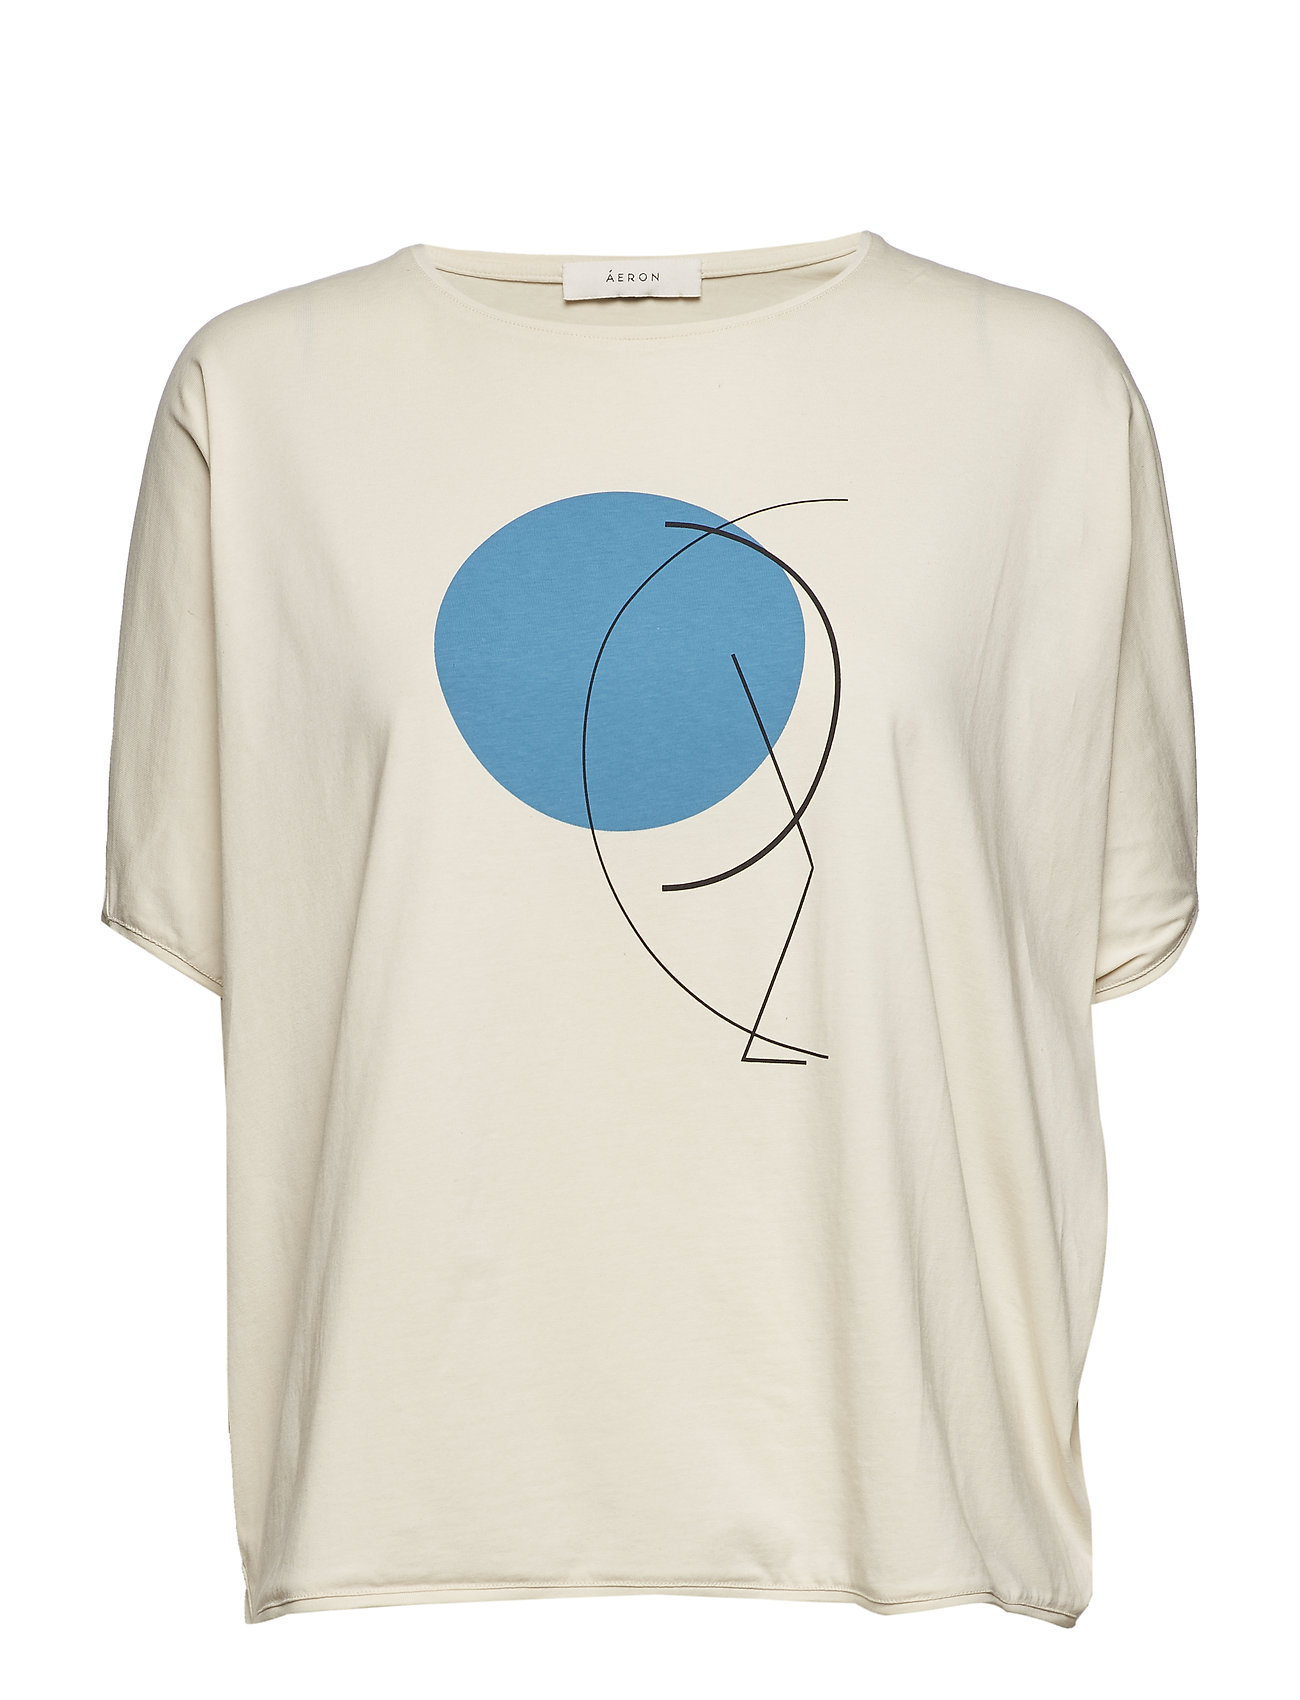 ÁERON japanese sleeve t-shirt - IVORY - BLUE